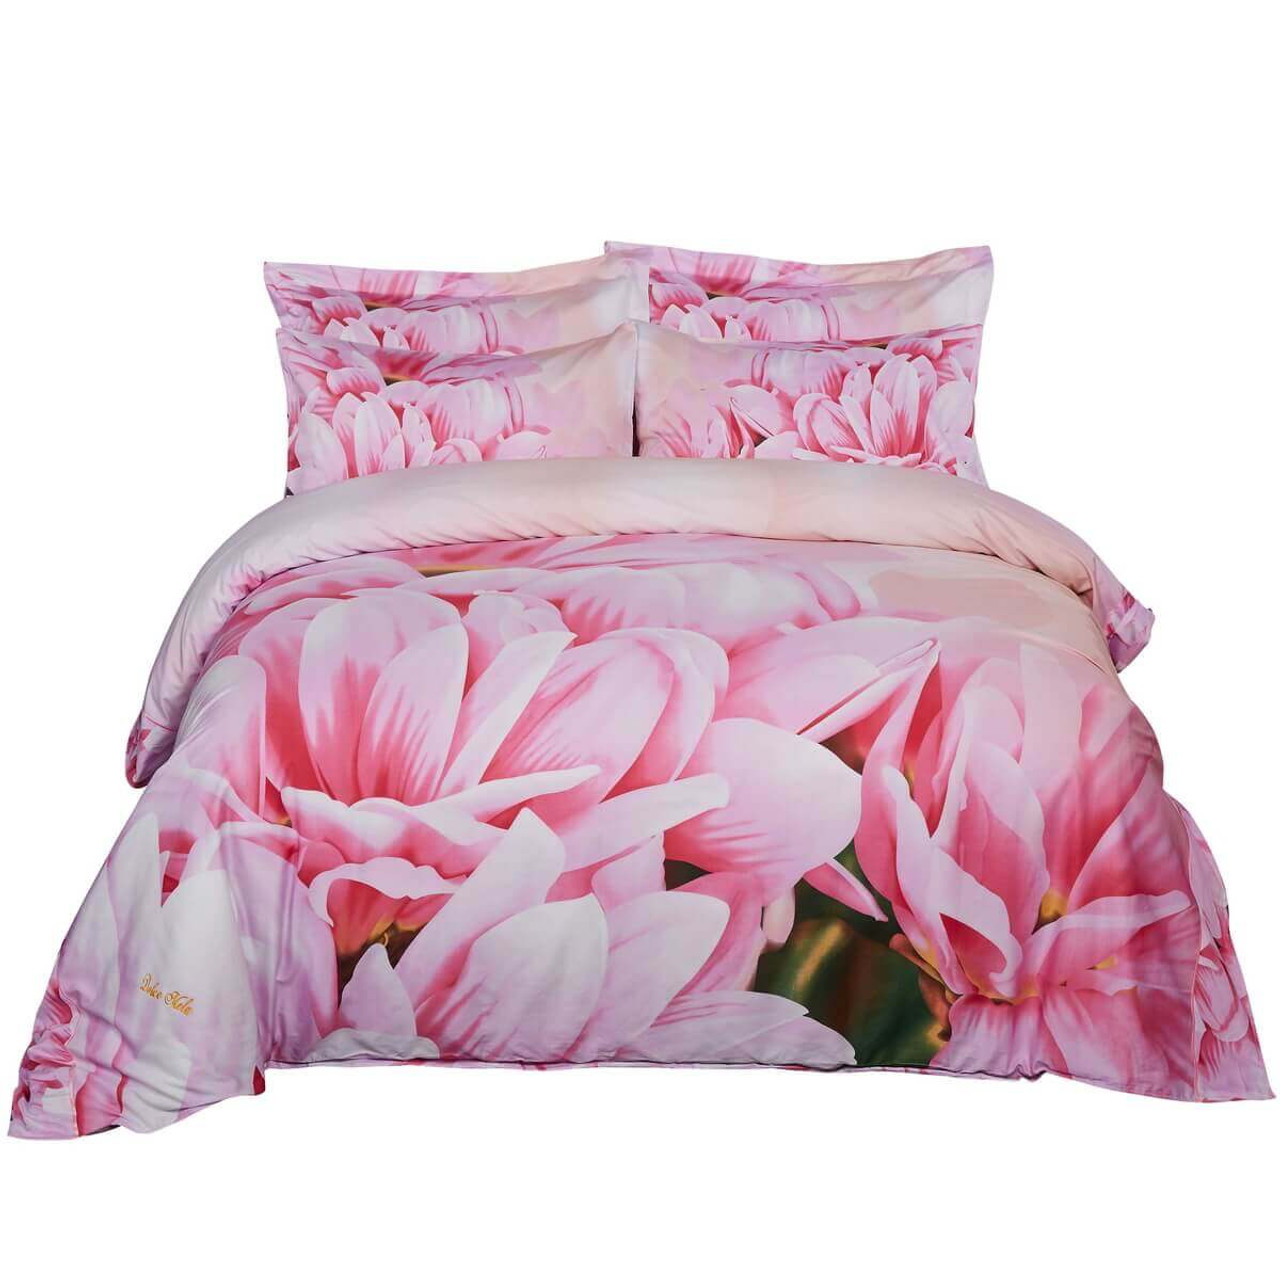 Floral Bedding, Dolce Mela - May DM701K  Drop-shipping